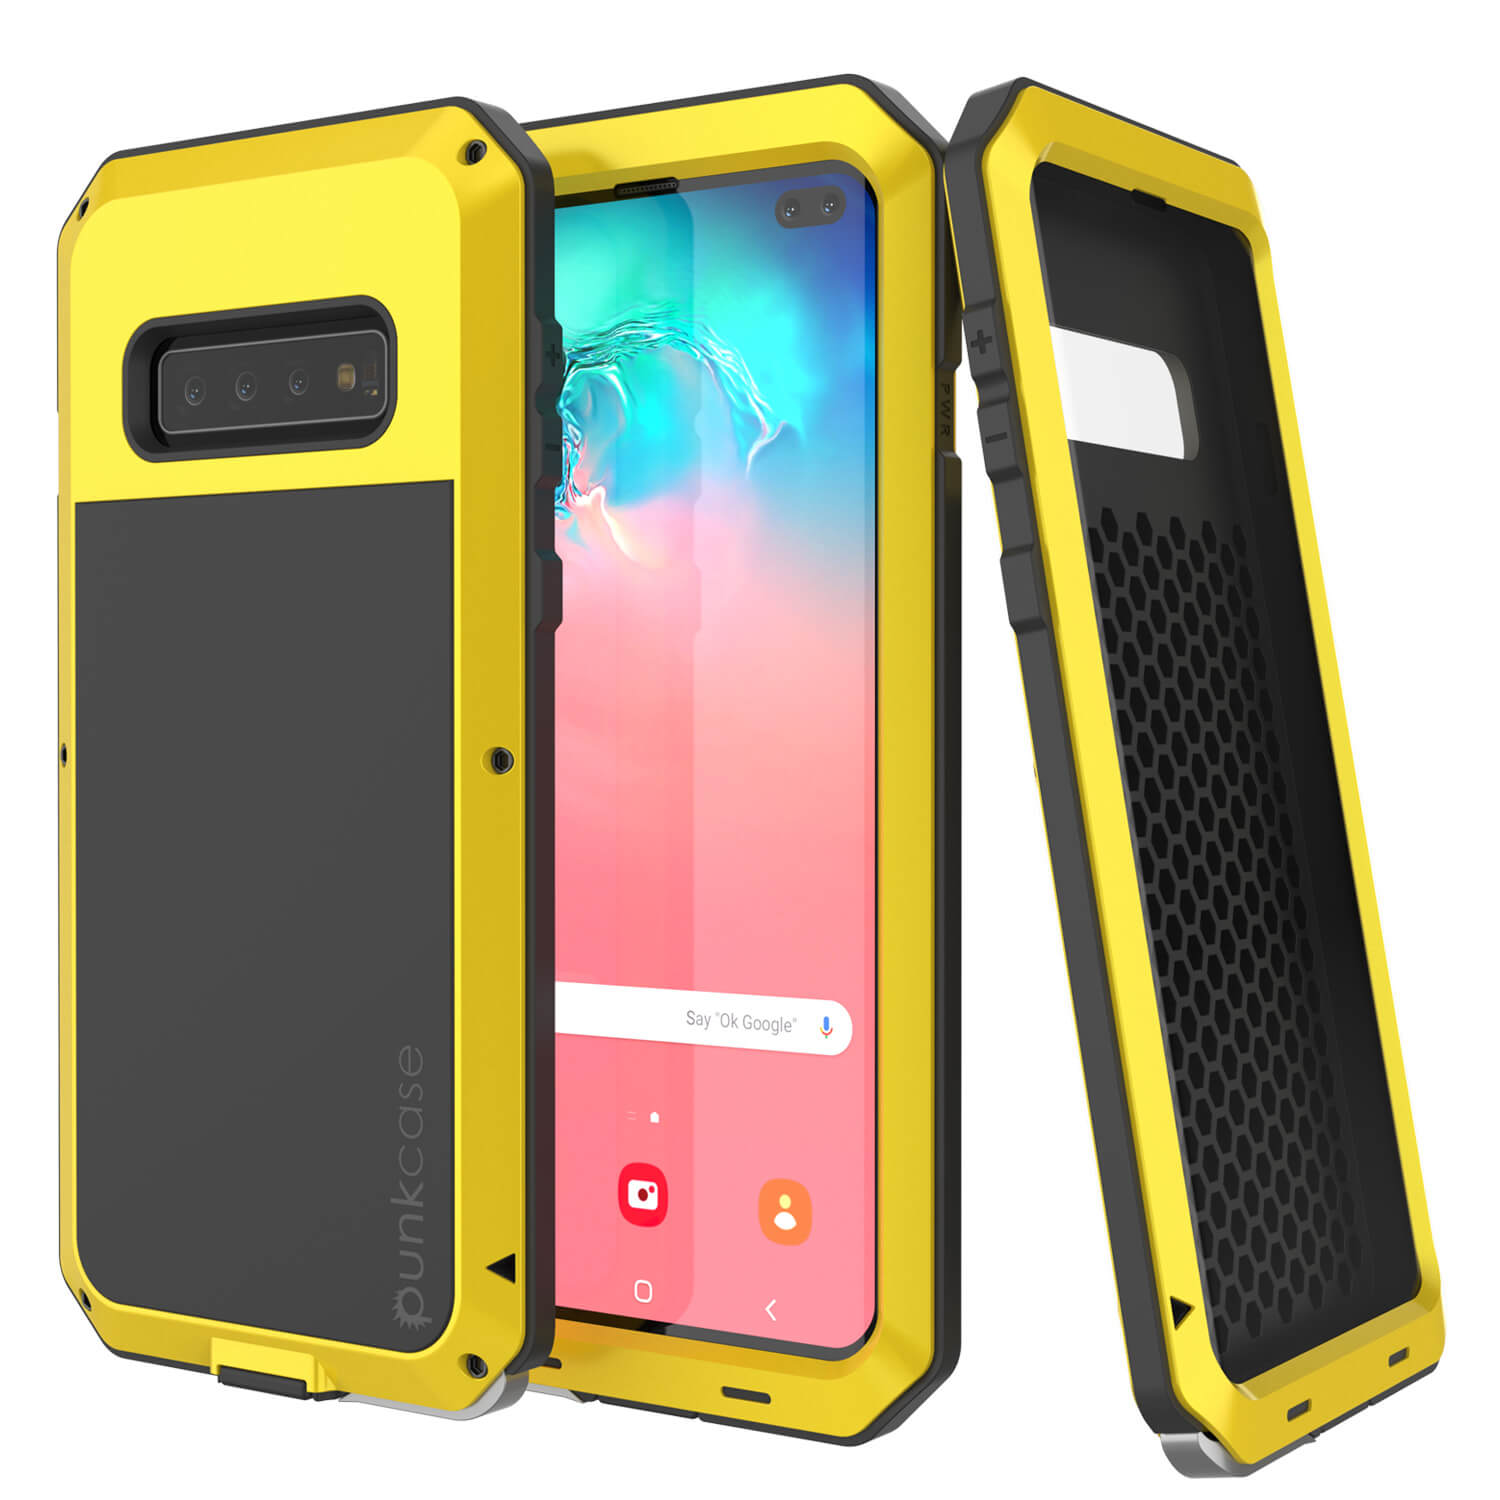 Galaxy S10+ Plus Metal Case, Heavy Duty Military Grade Rugged Armor Cover [Neon]